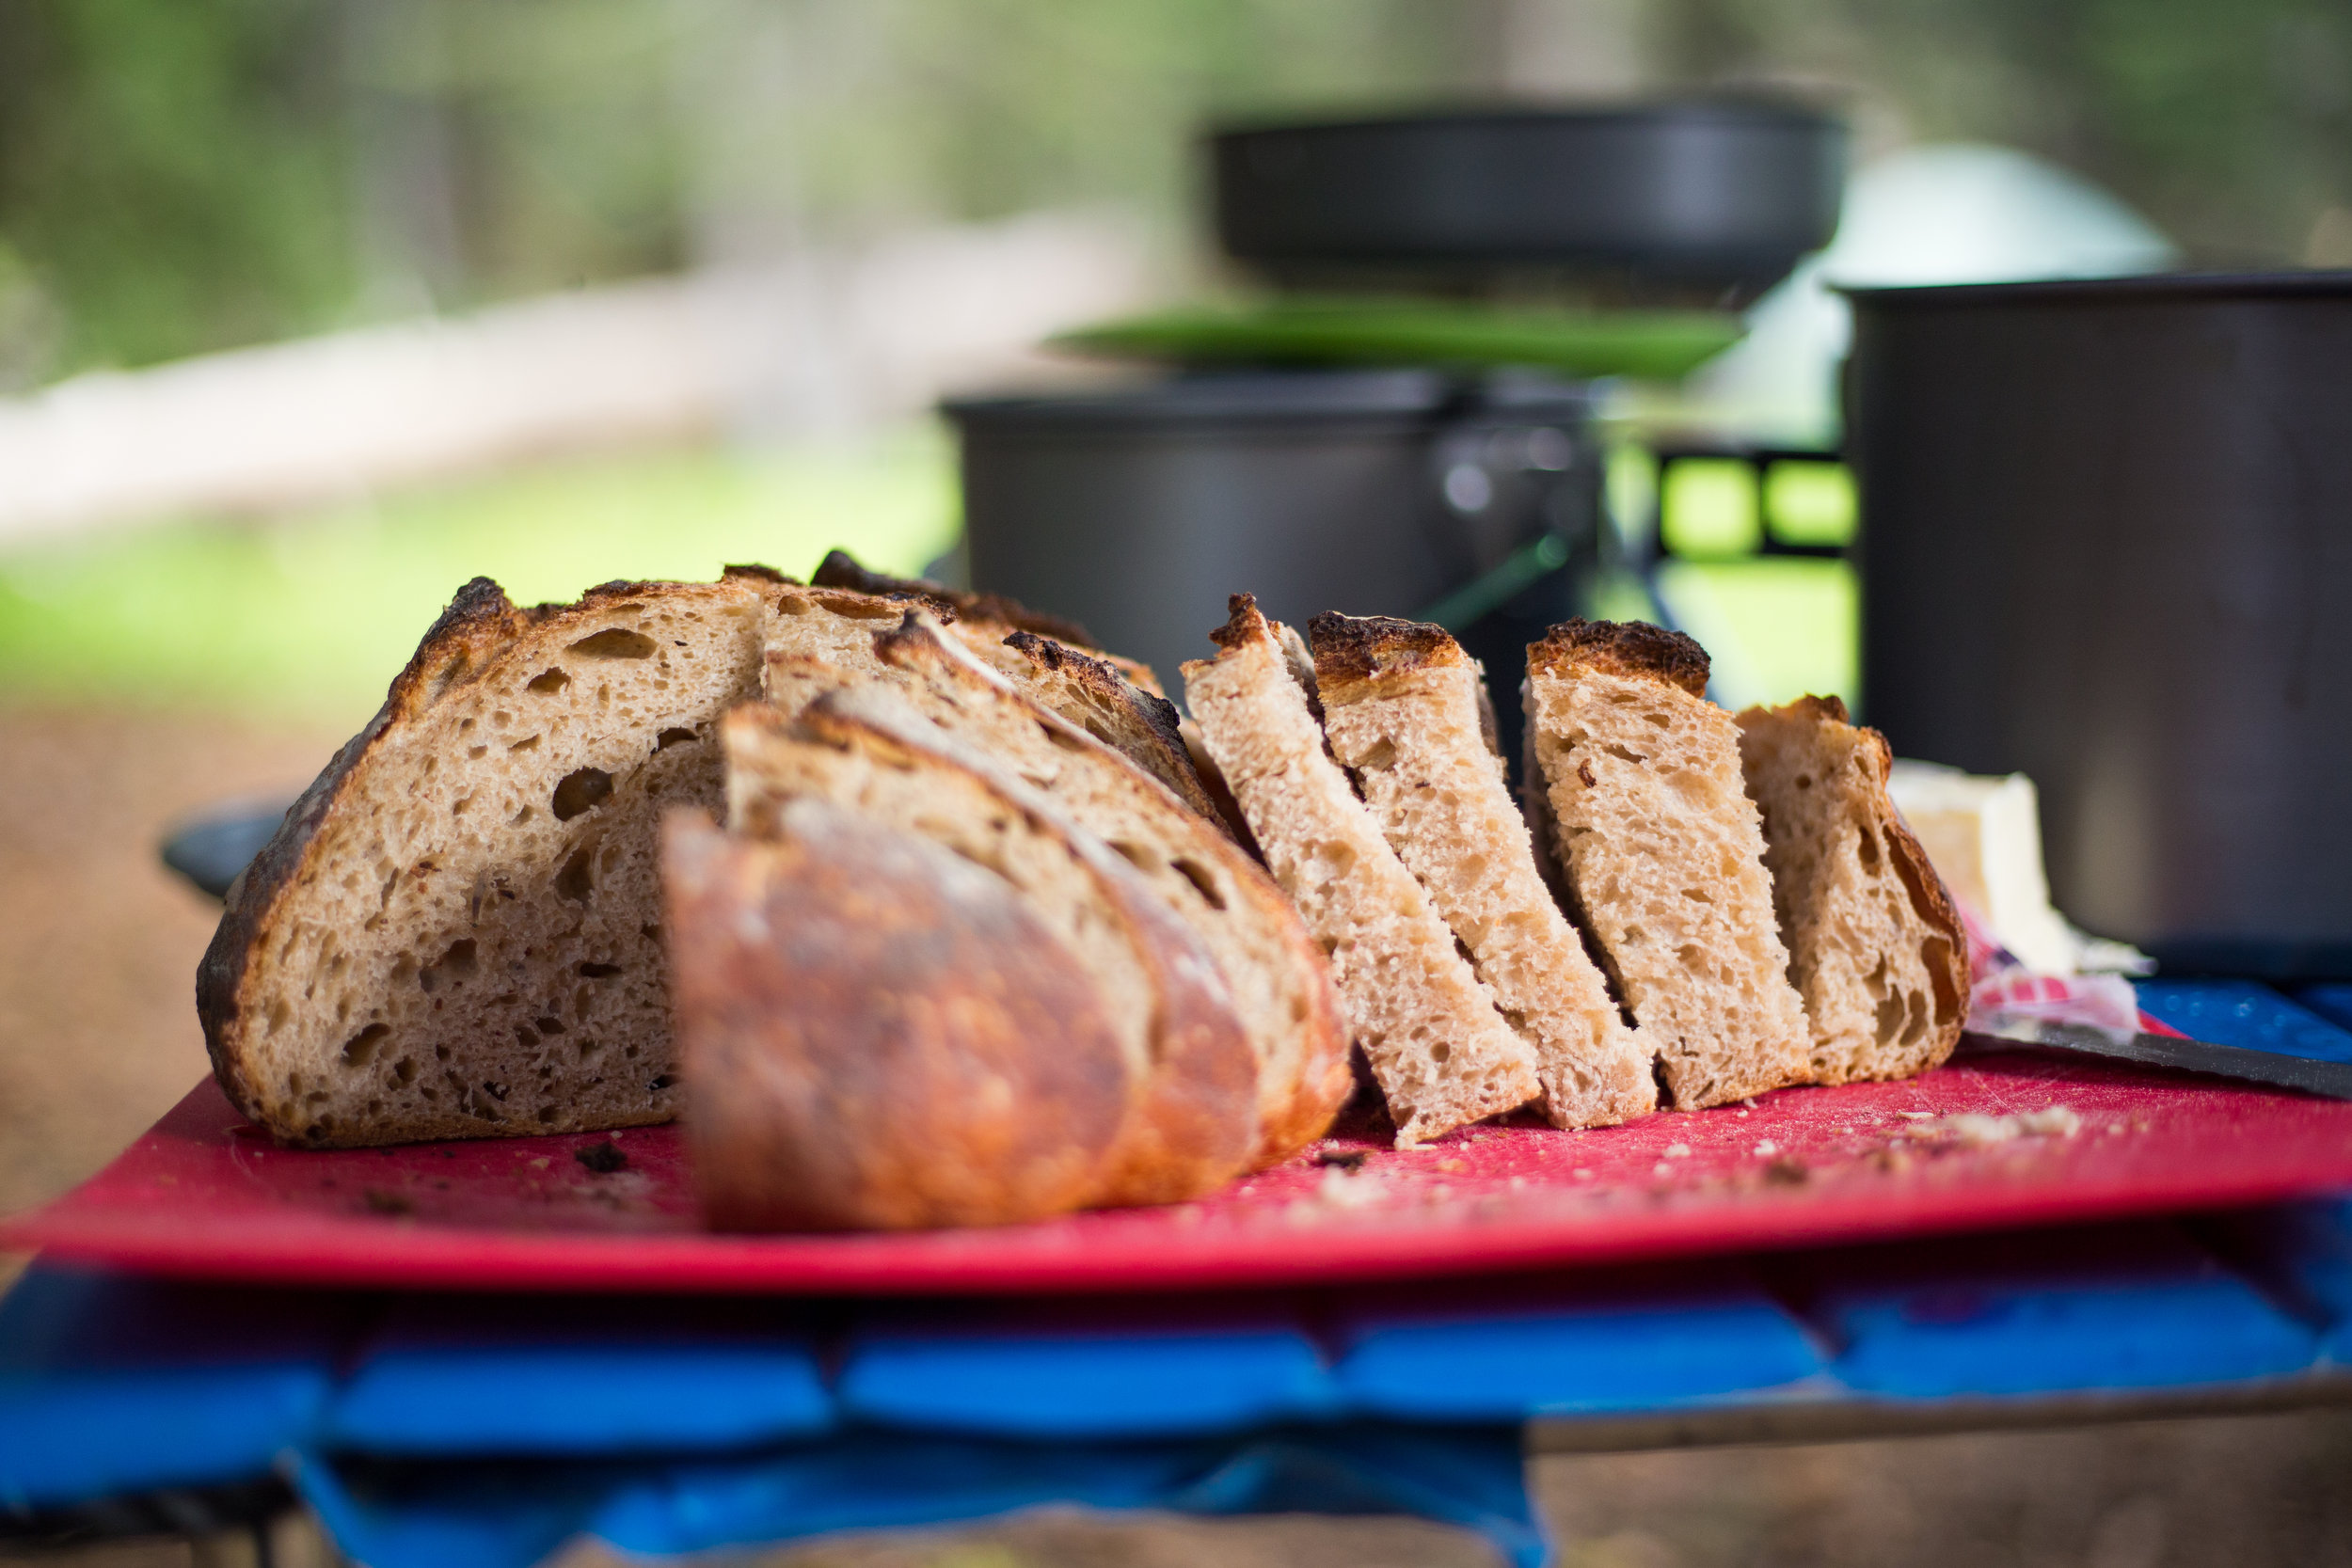 HOMEMADE BREAD AND GOURMET BACHELORETTE PARTY CATERING